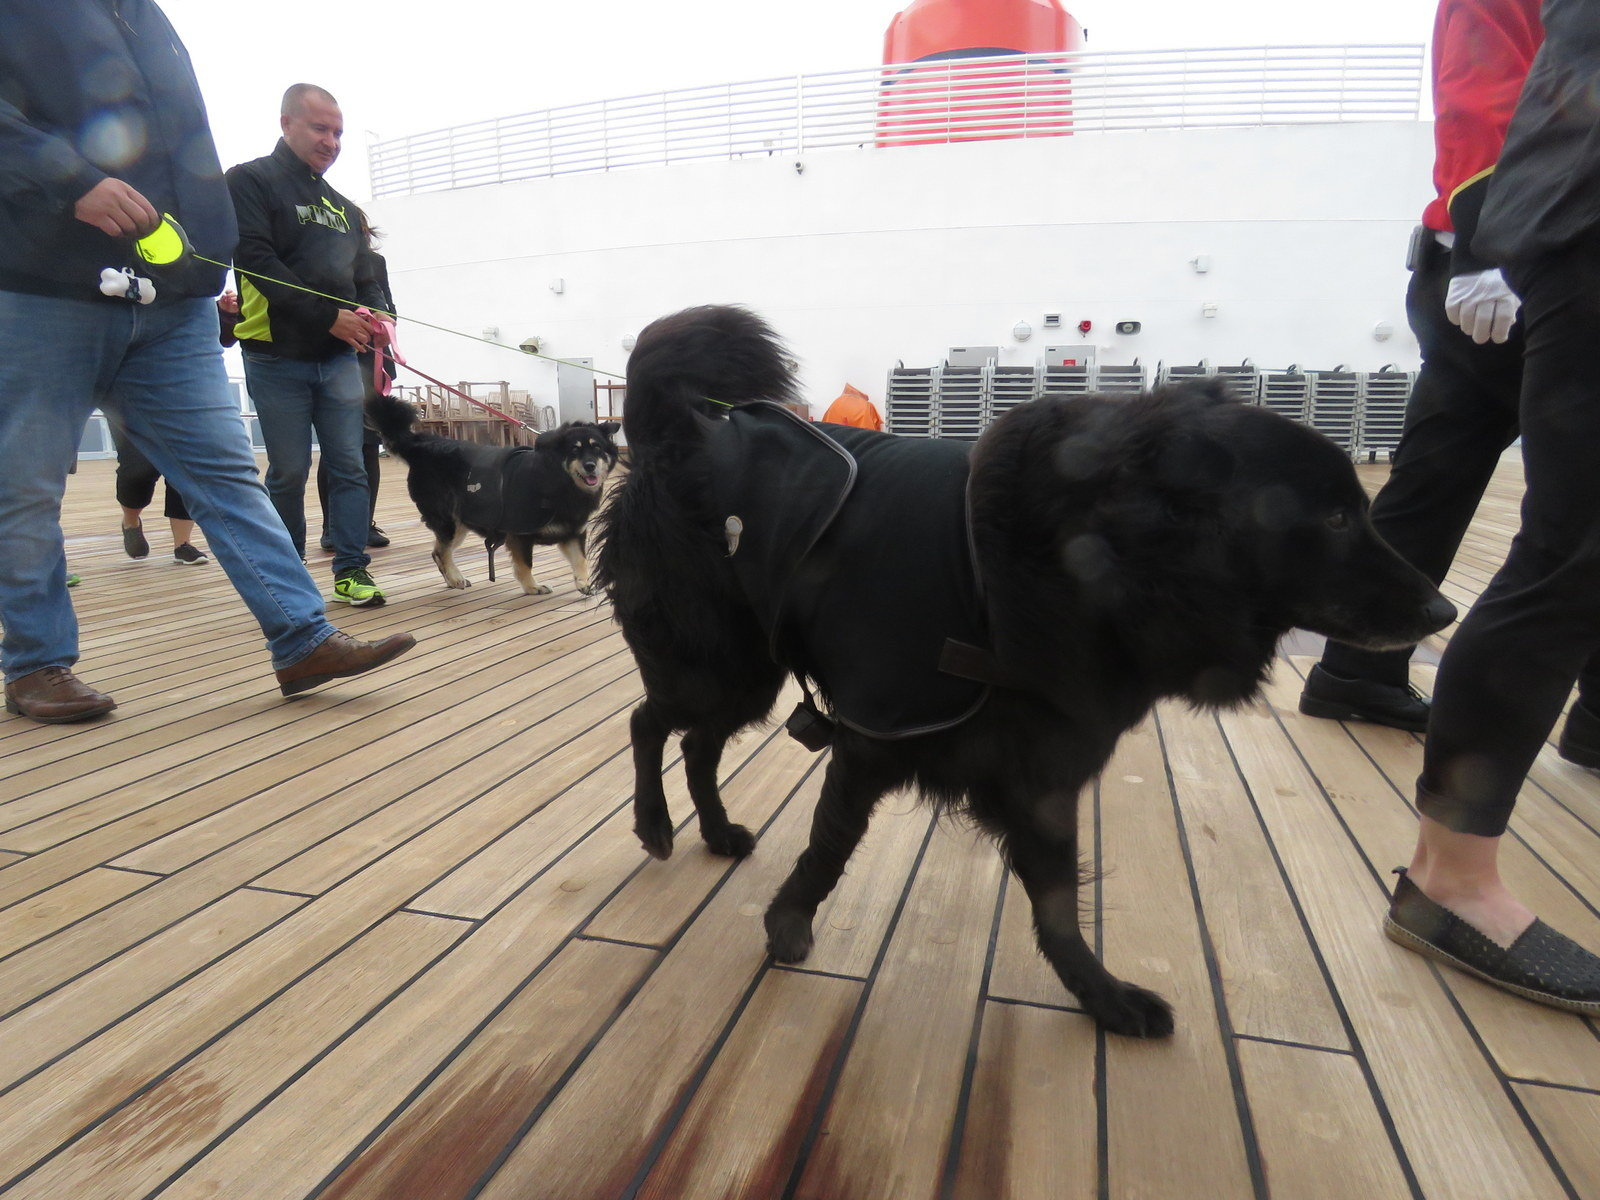 Dog parade on Queen Mary 2